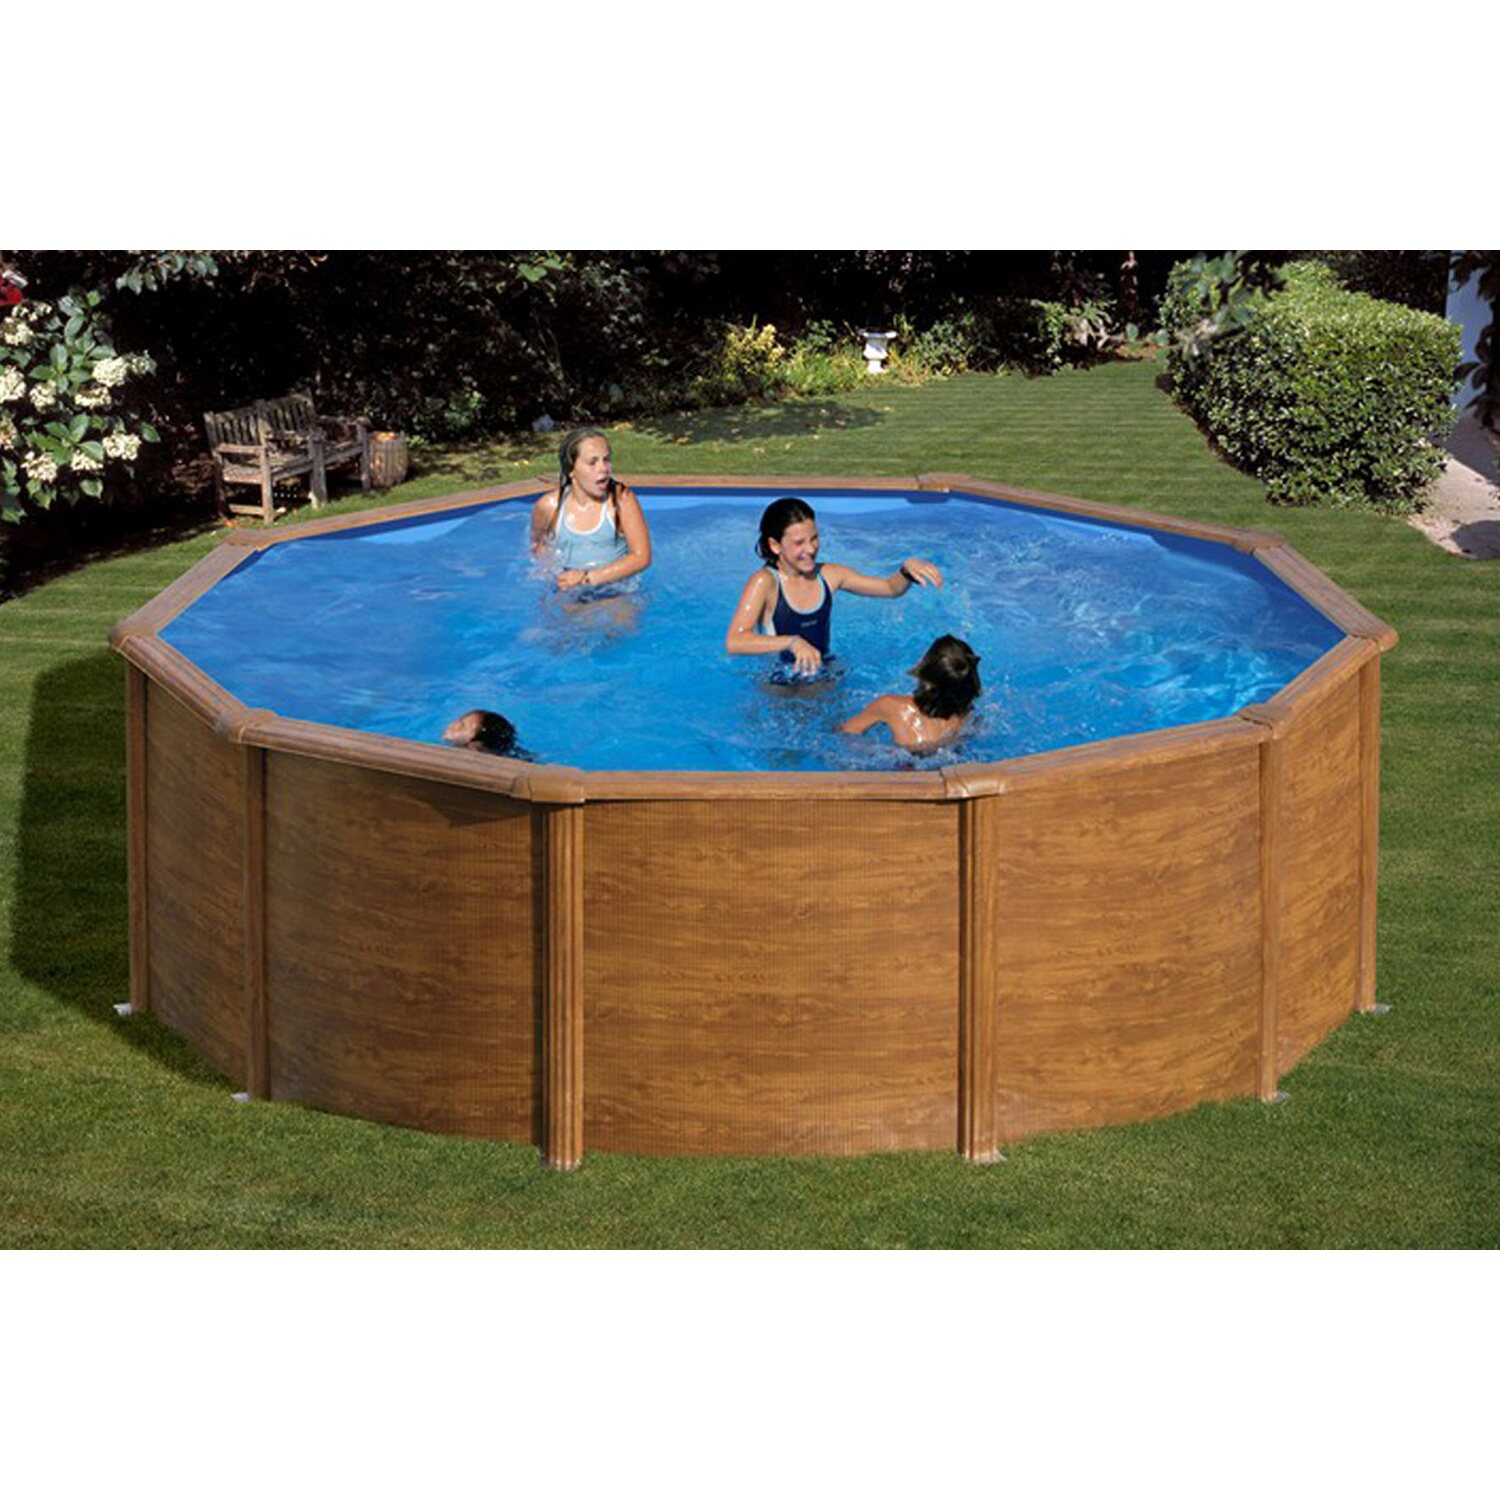 Summer fun stahlwand pool set holz dekor rhodos for Rundpool stahlwand